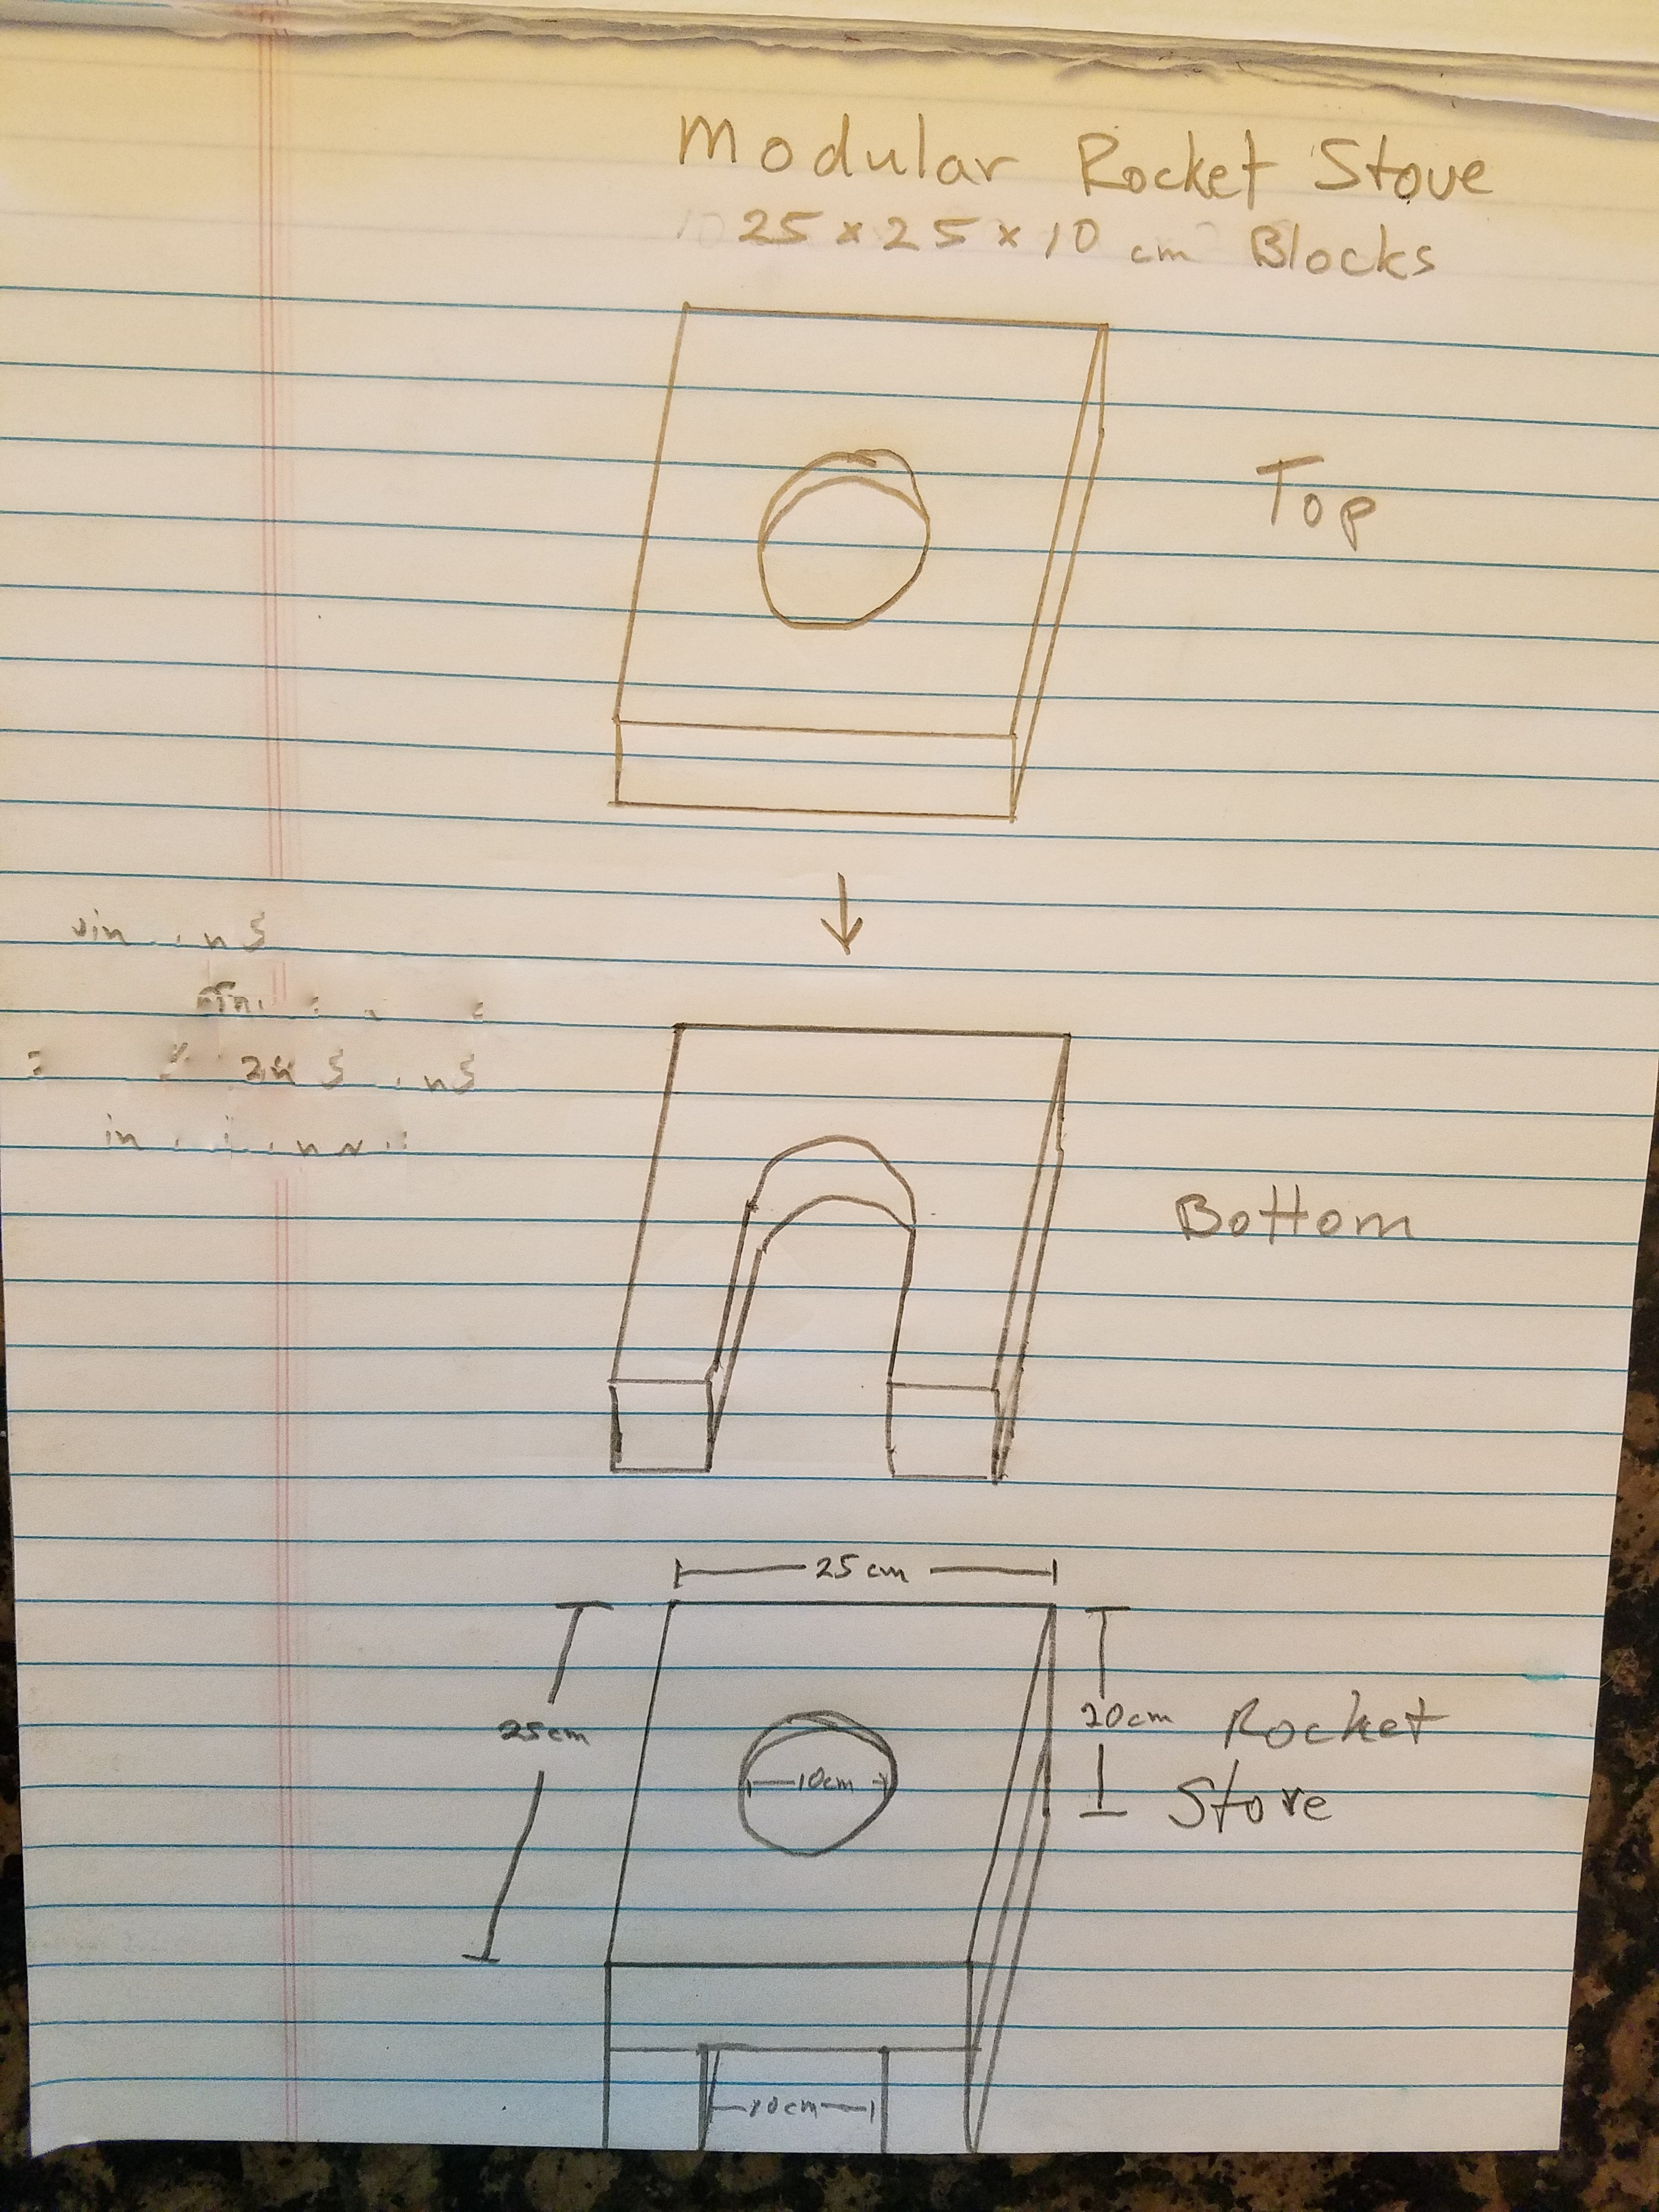 Simple Rocket Stoves For Africa And Beyond Forum At Stove Diagram Thumbnail W 2 Adobe Blocks